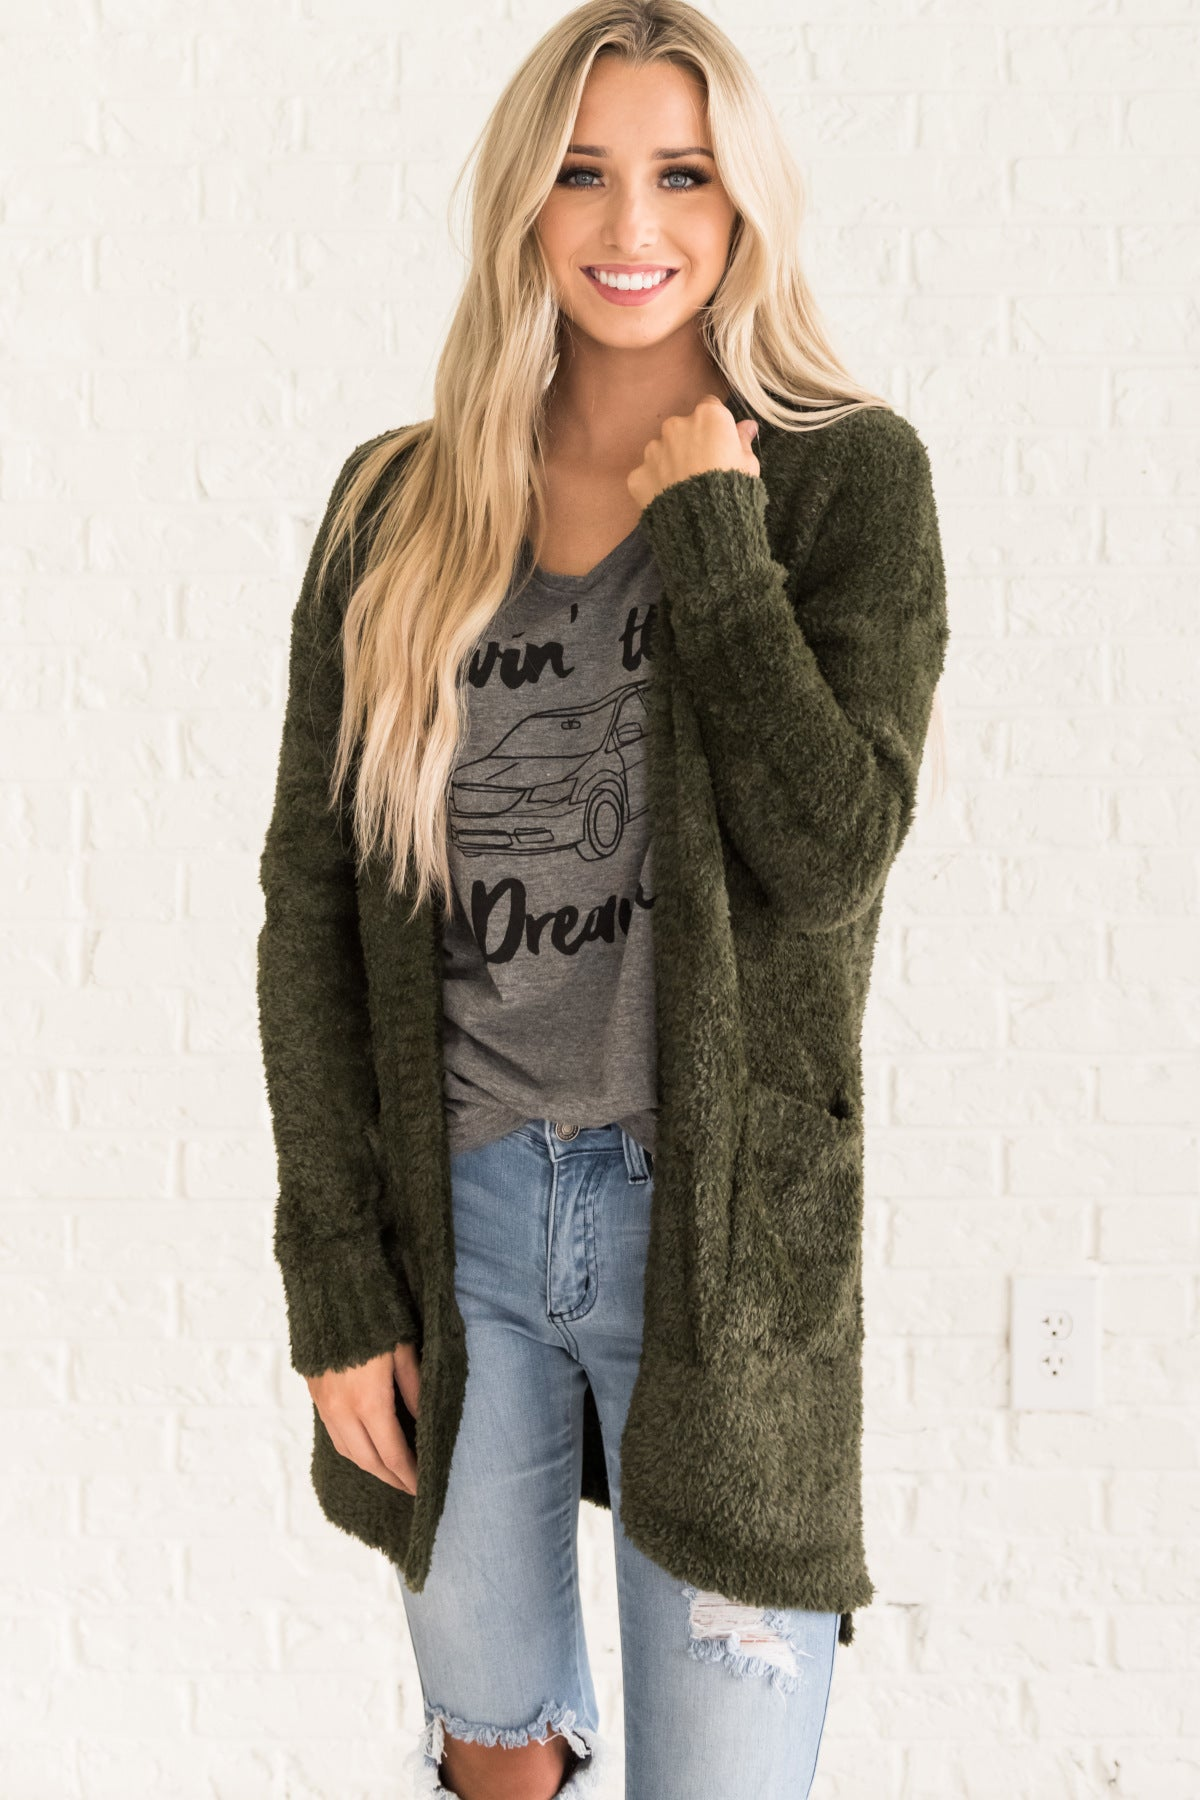 Olive Green Fuzzy Soft Knit Cardigan Sweater with Pockets